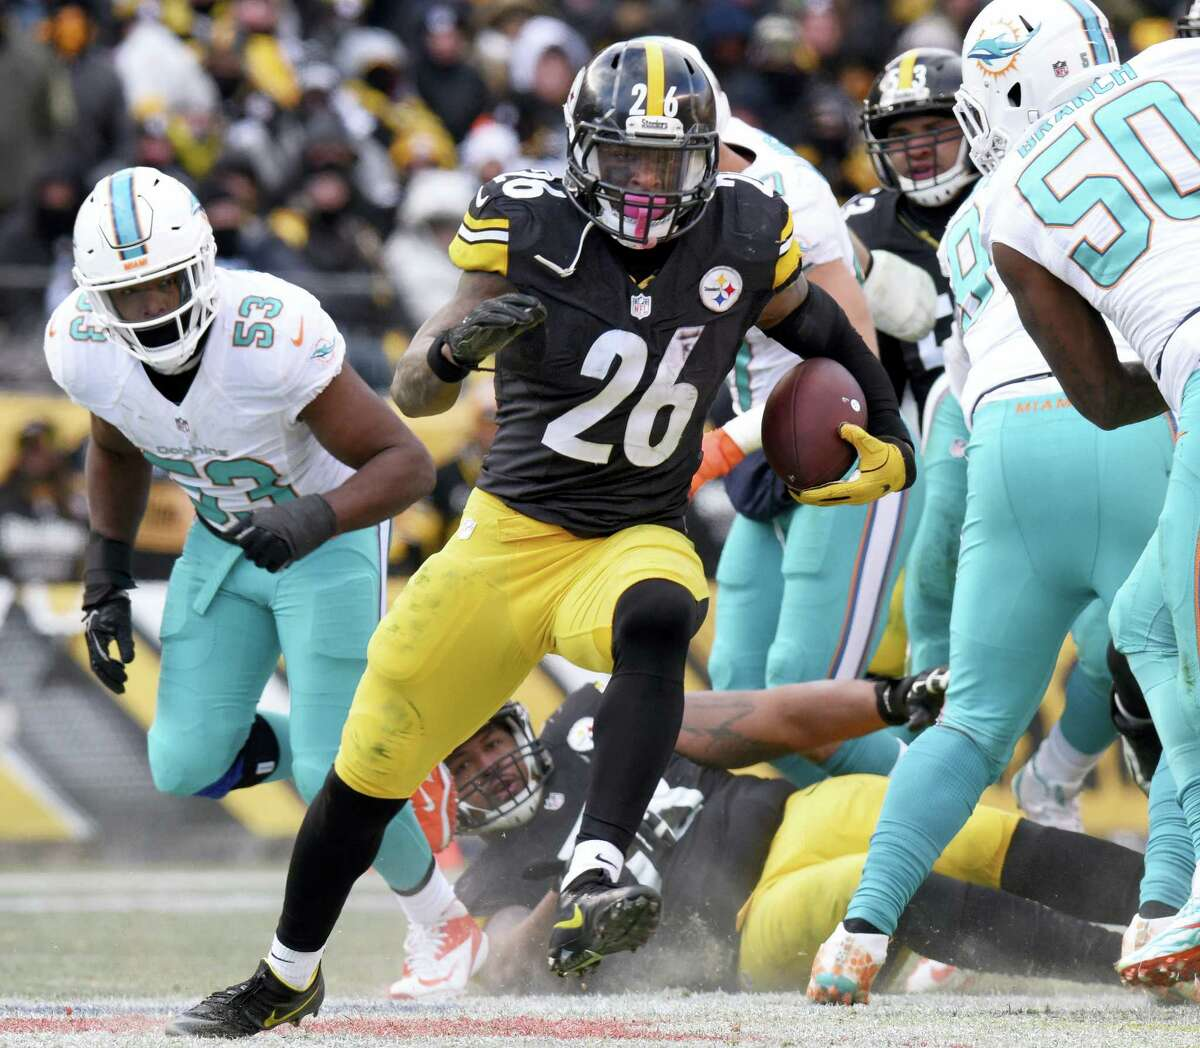 Steelers running back Le'Veon Bell (26) runs during the second half Sunday's win over the Dolphins.